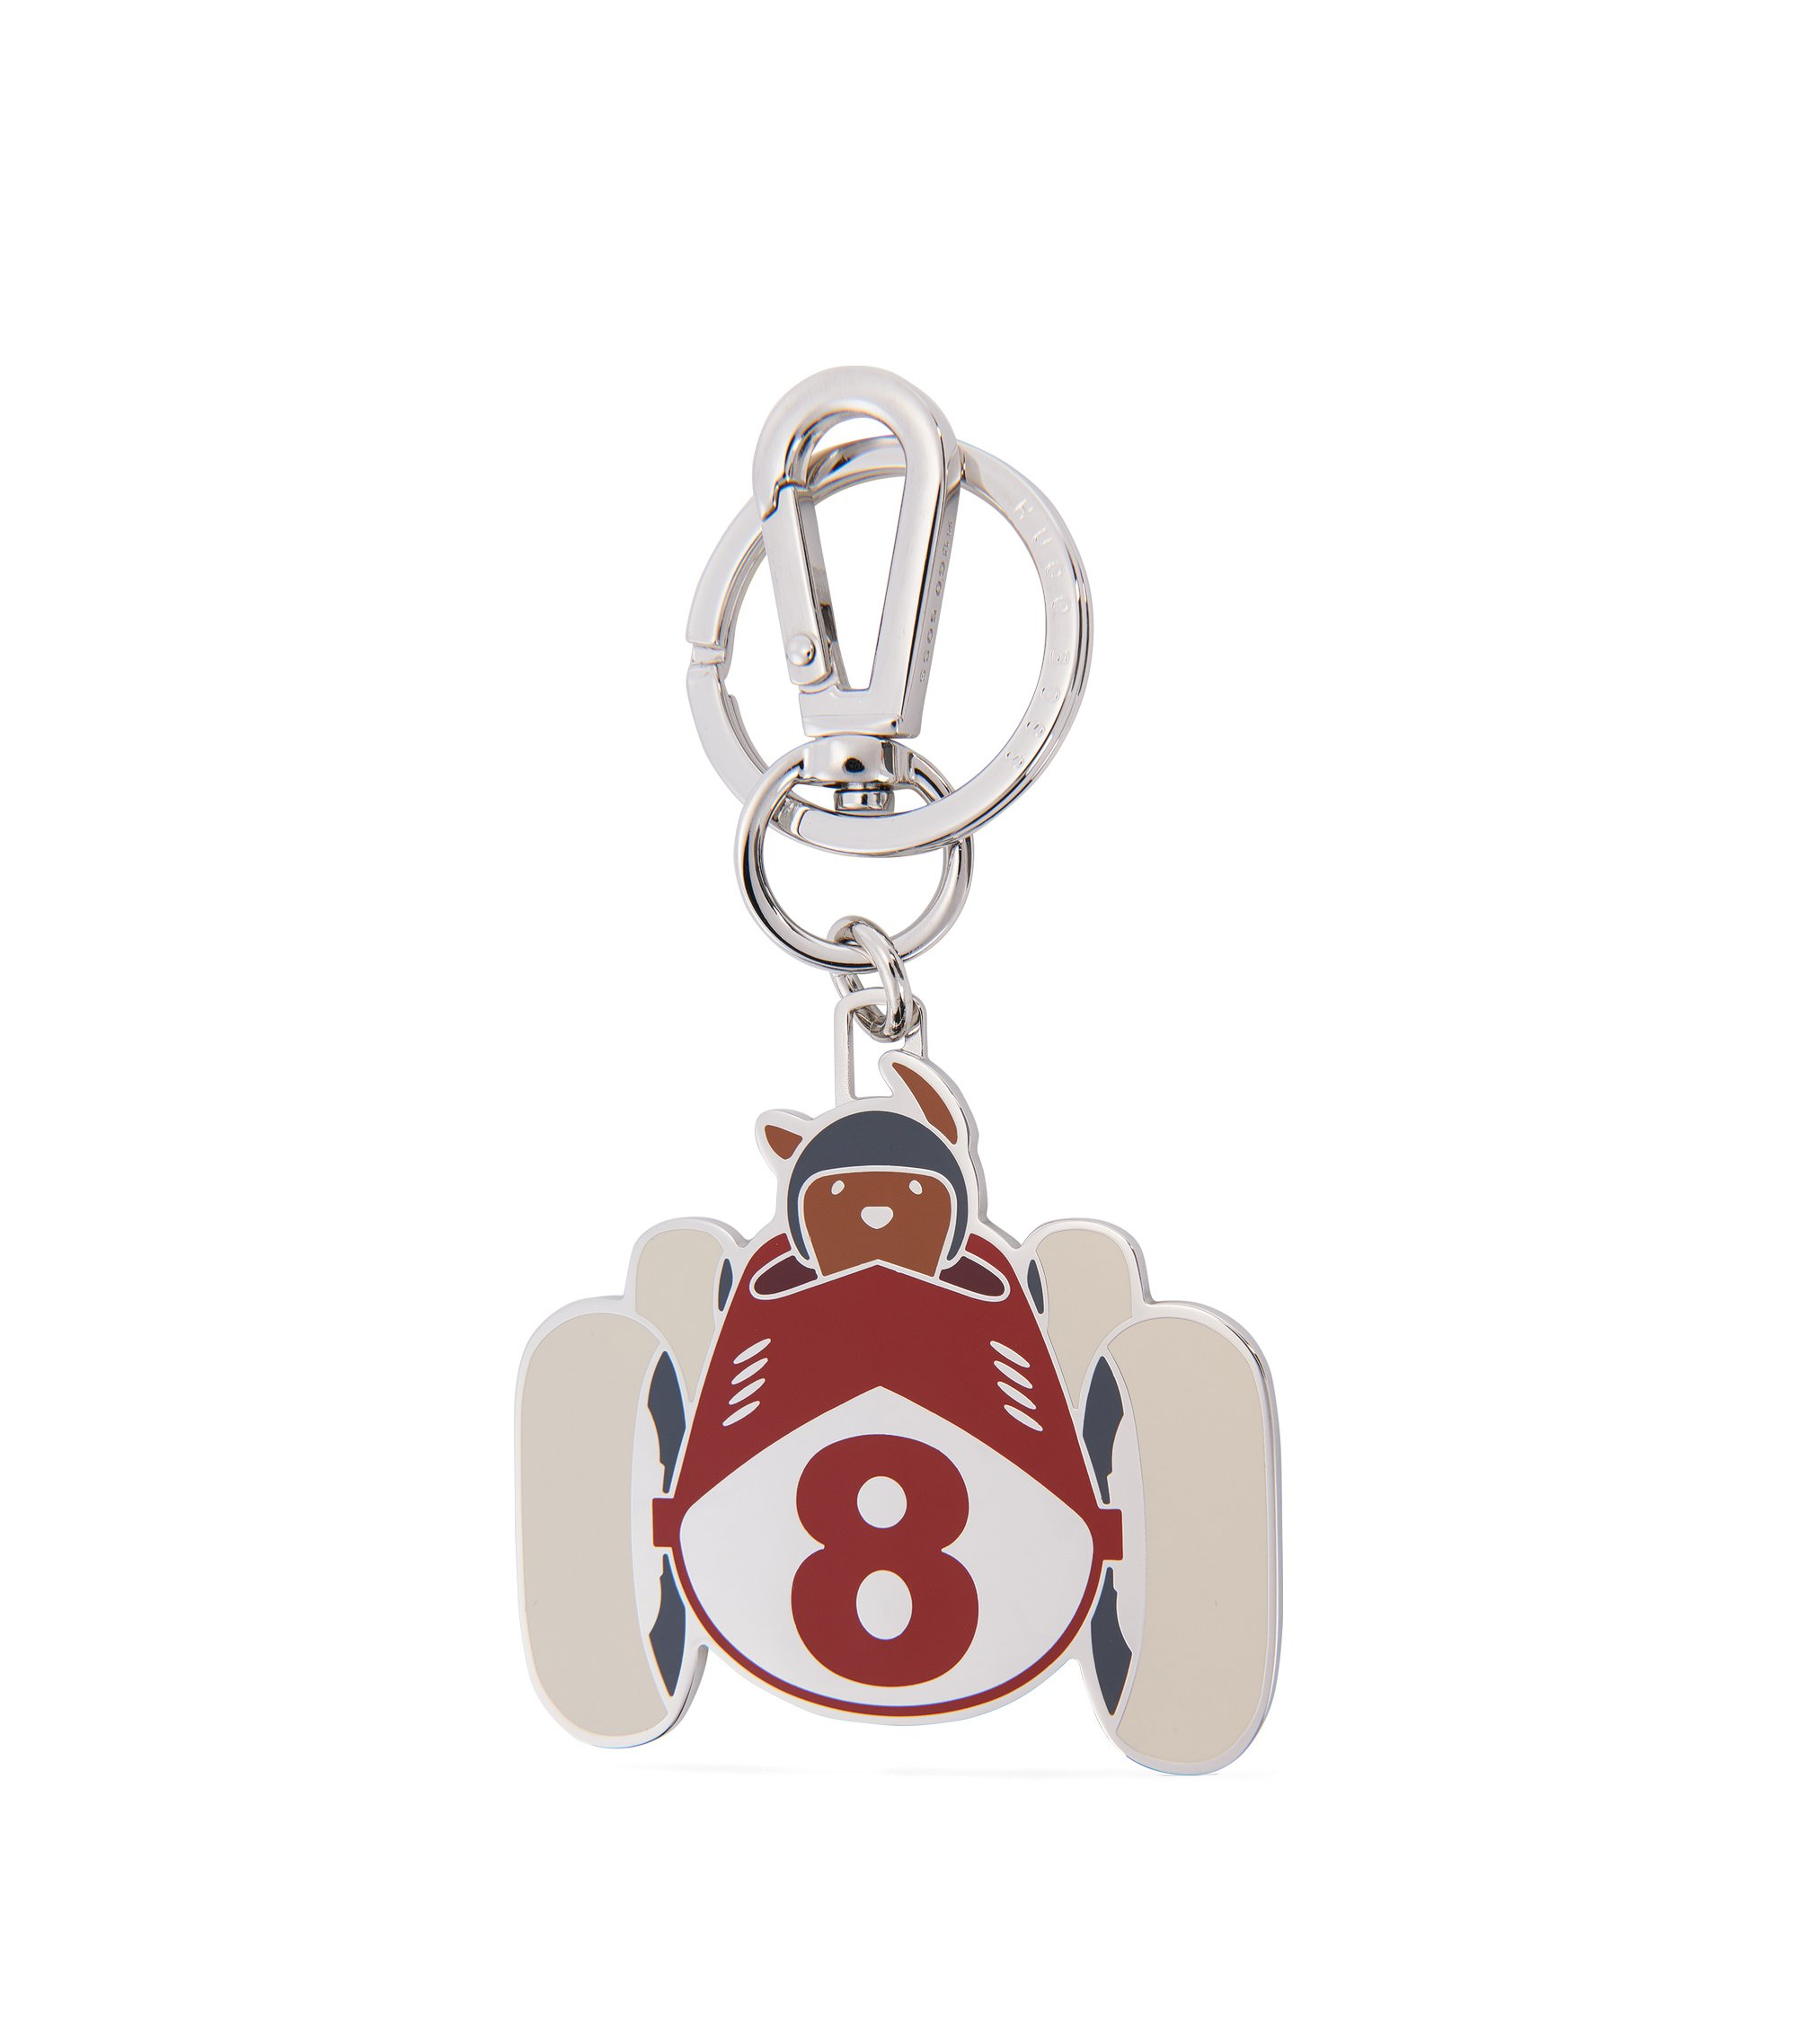 Key holder in steel and enamel, Red